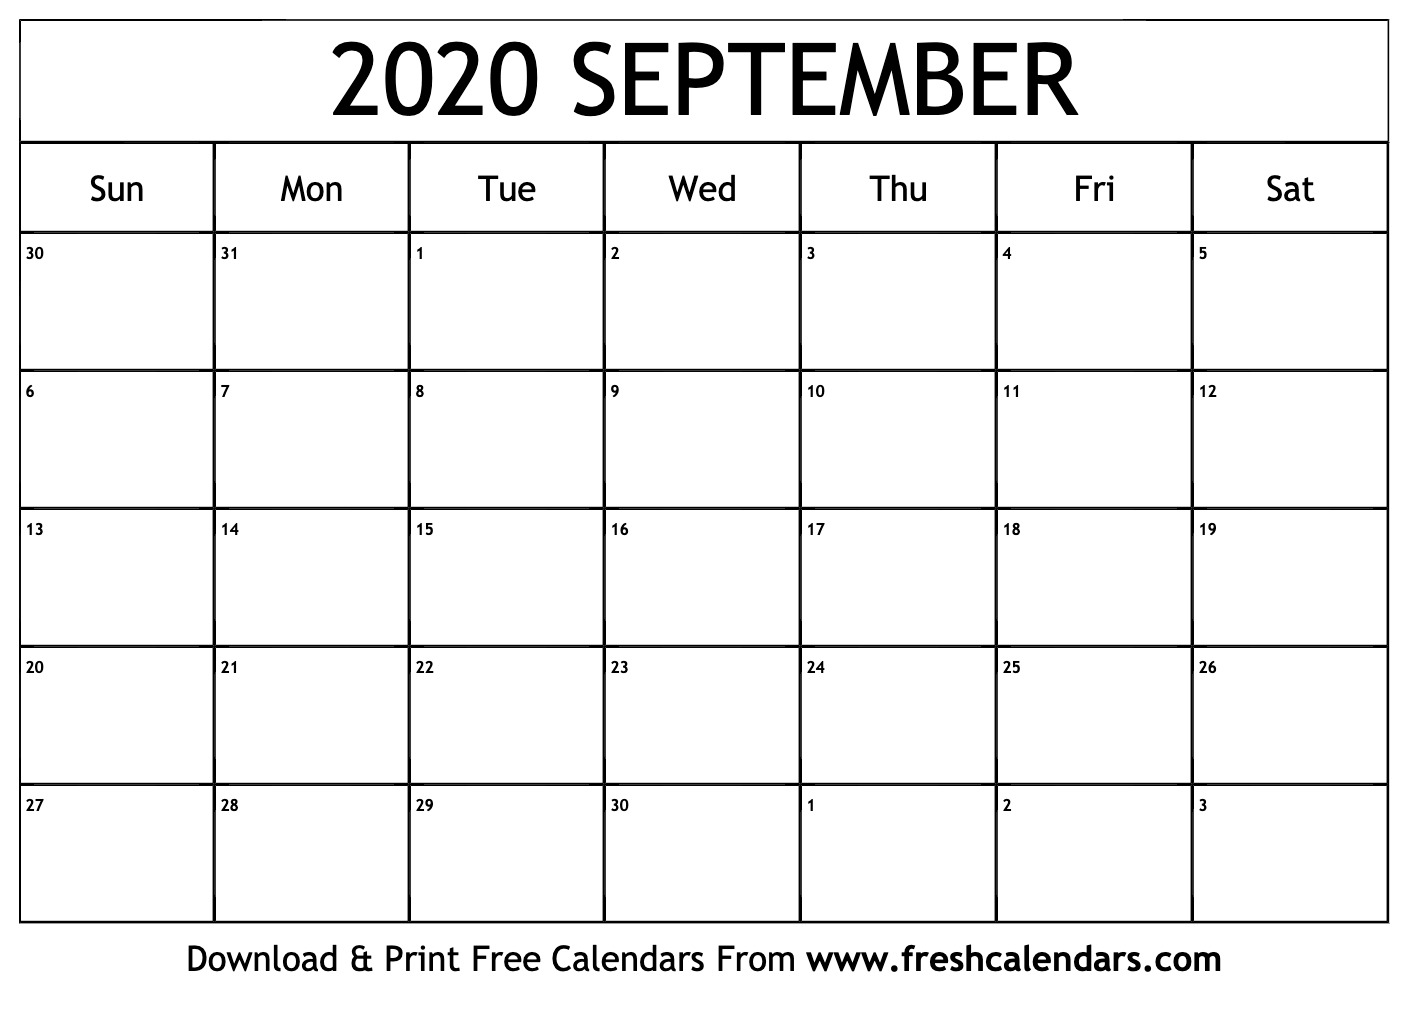 Free September 2020 Calendar September 2020 Calendar Printable   Fresh Calendars